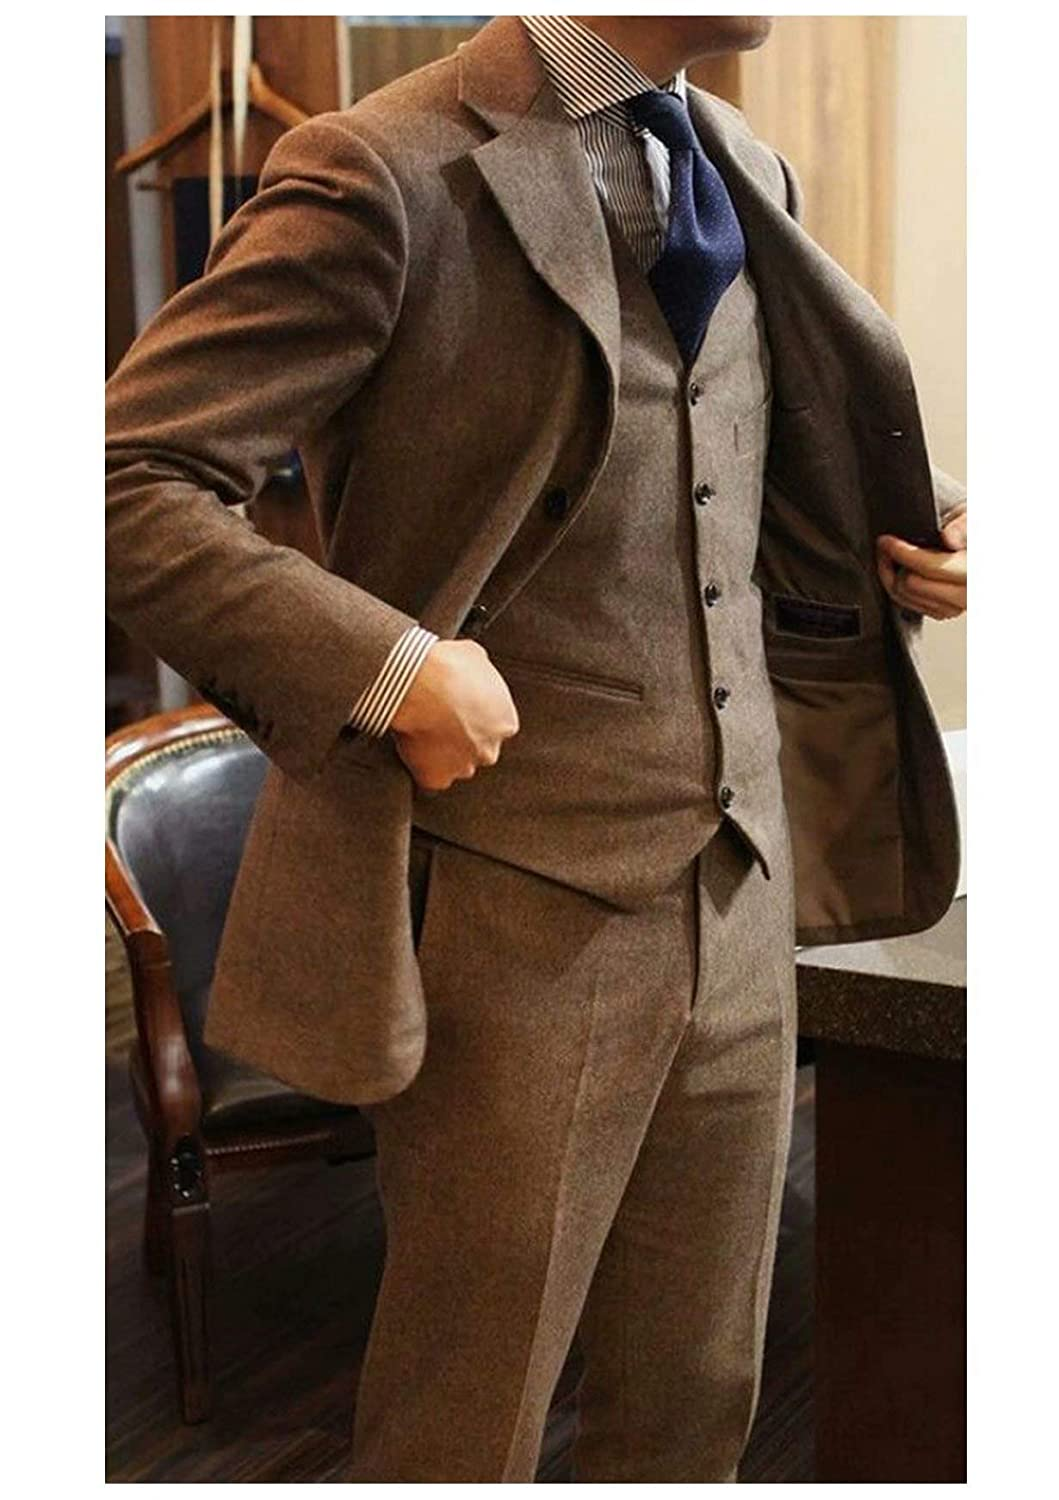 8ce8f98b7113 Jingmo Tweed Wool Brown Men Suit British Style Modern Blazer 3 Pieces Men  Suits (Jacket+Pants+Vest) at Amazon Men's Clothing store: